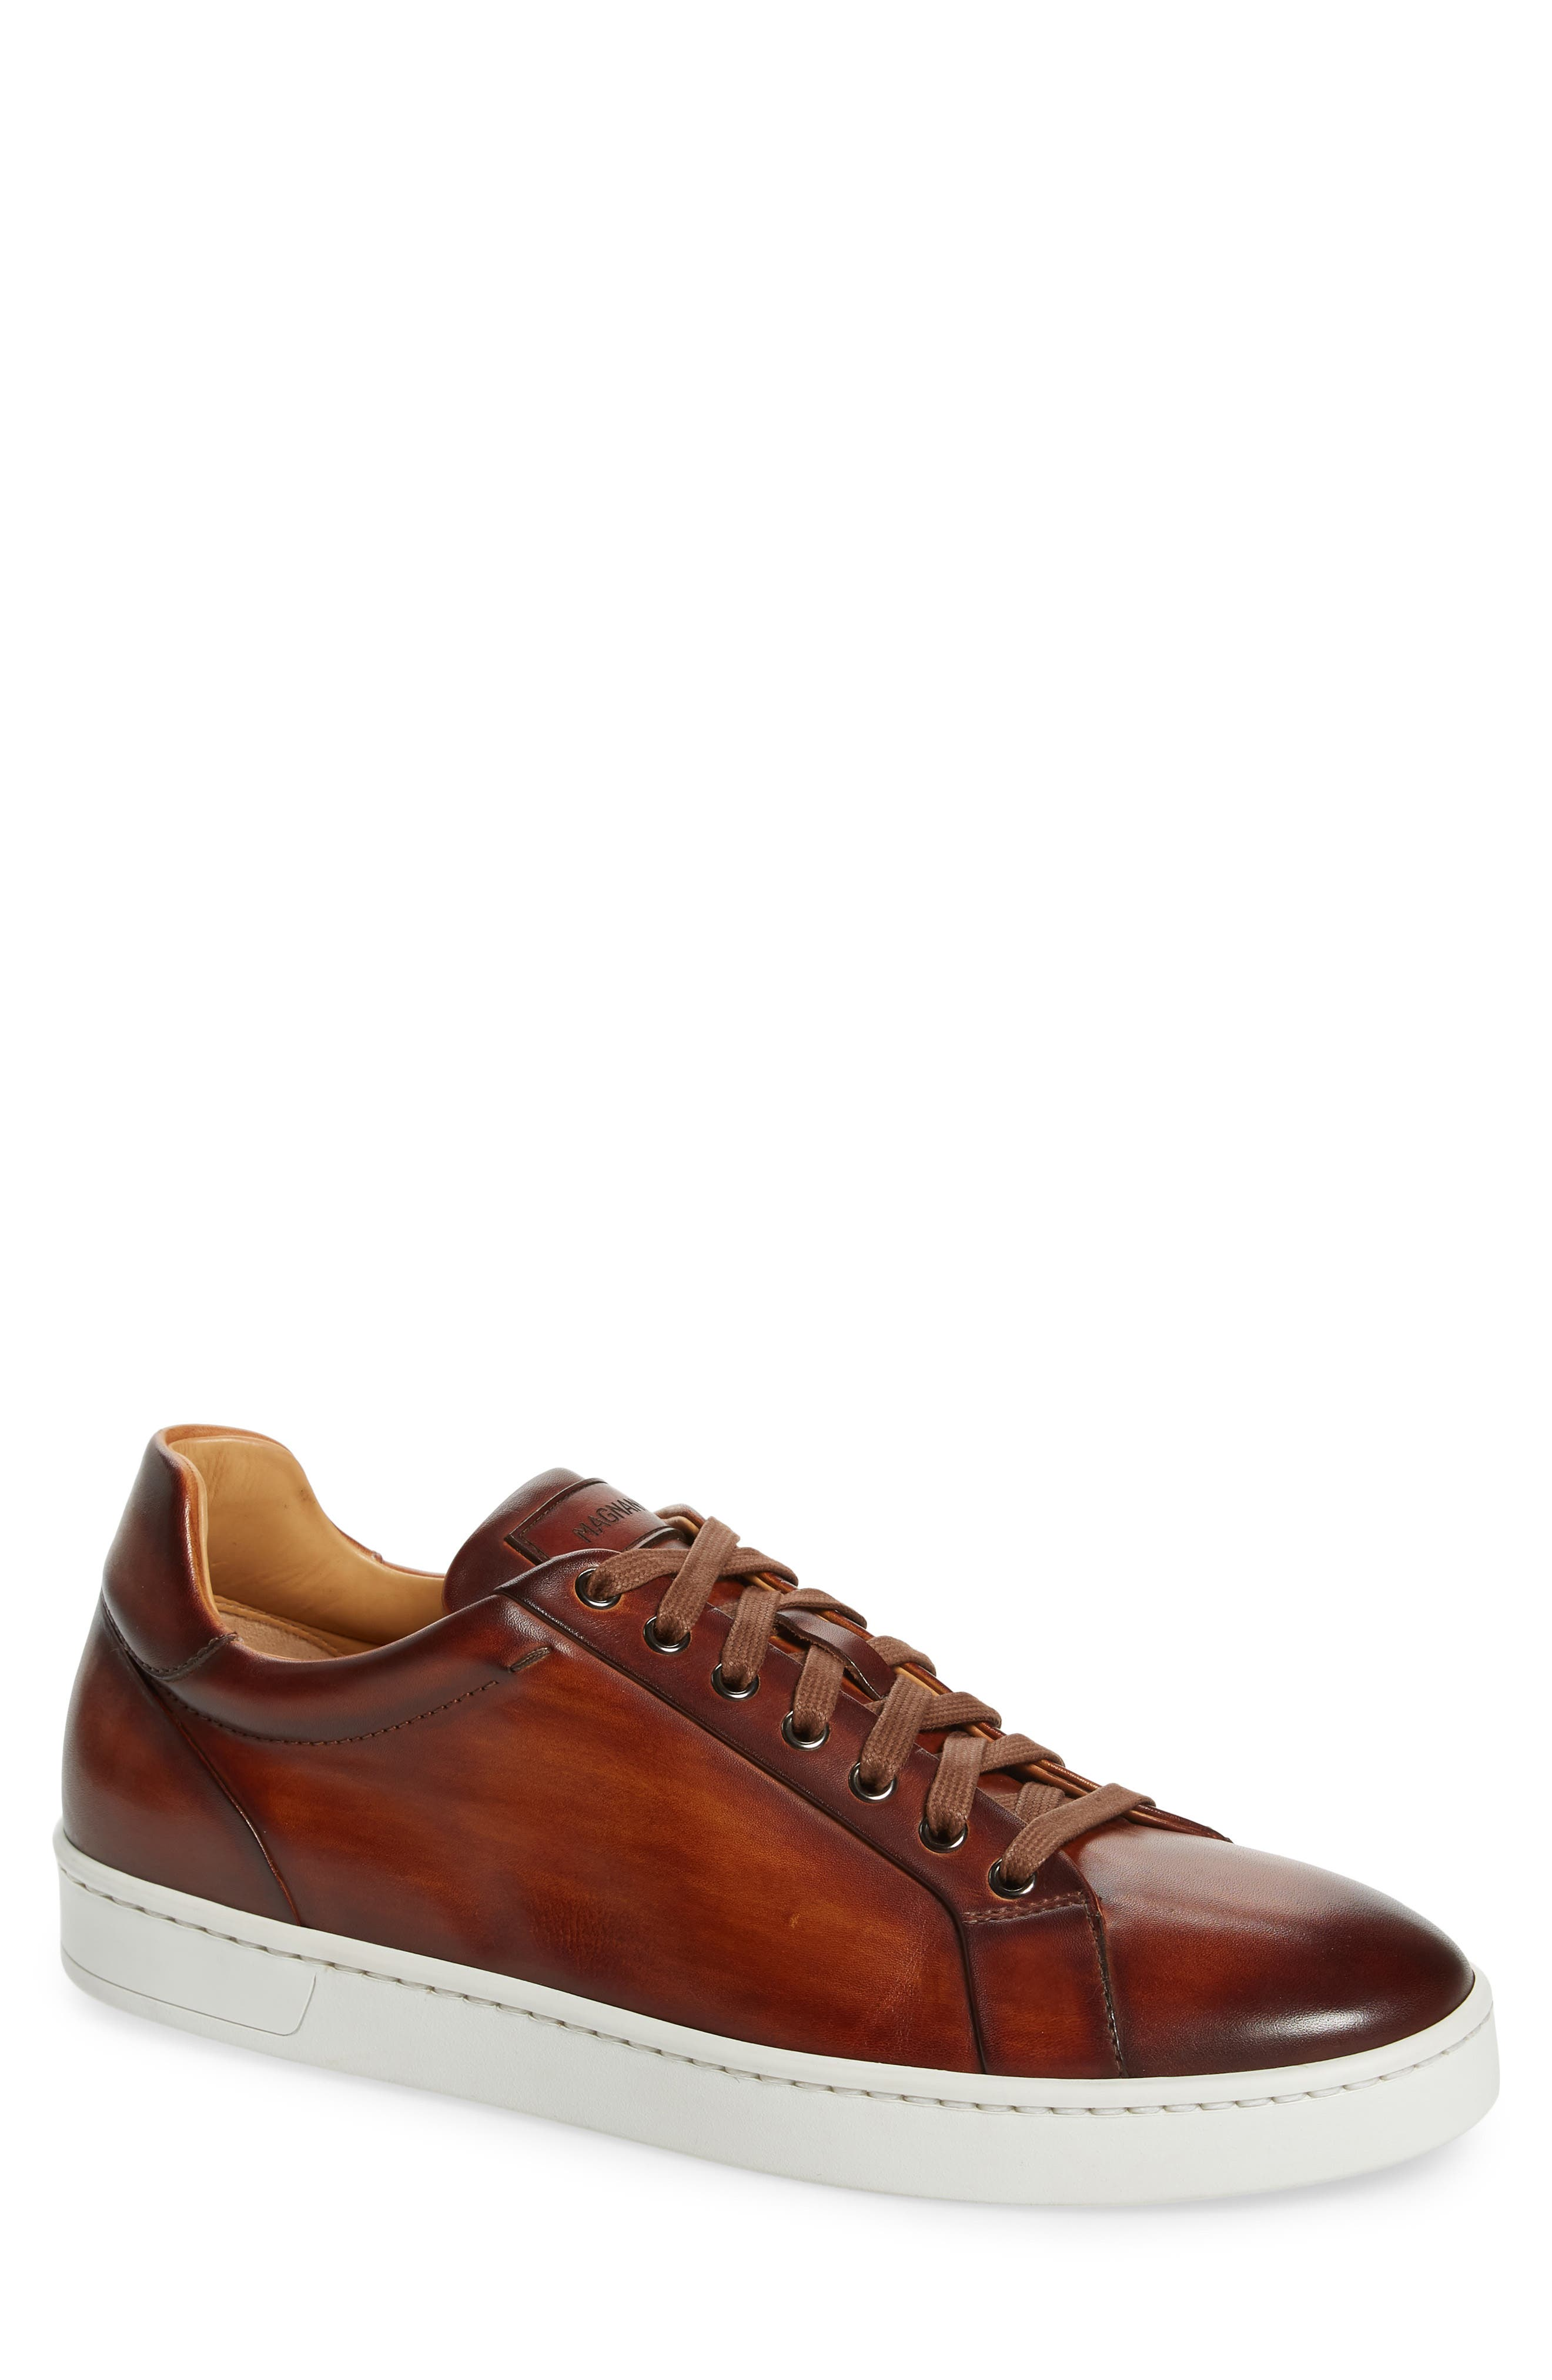 Magnanni Elonso Low Top Sneaker, Brown